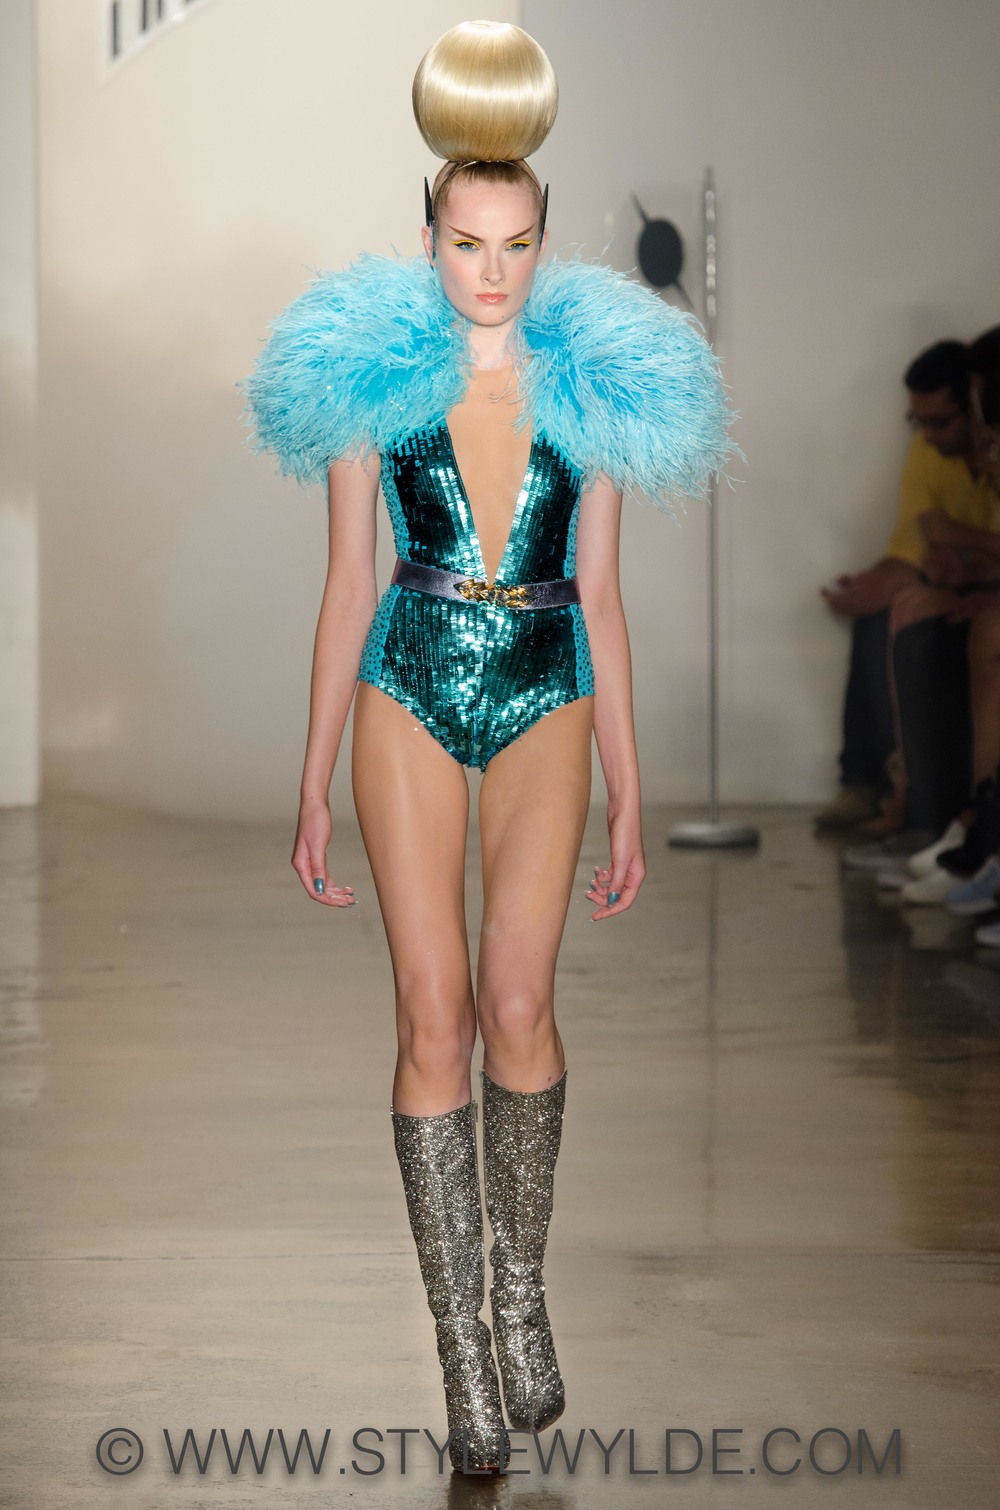 STYLEWYLDE_TheBlonds_Simon_SS2014_ 1 of 1-4.jpg